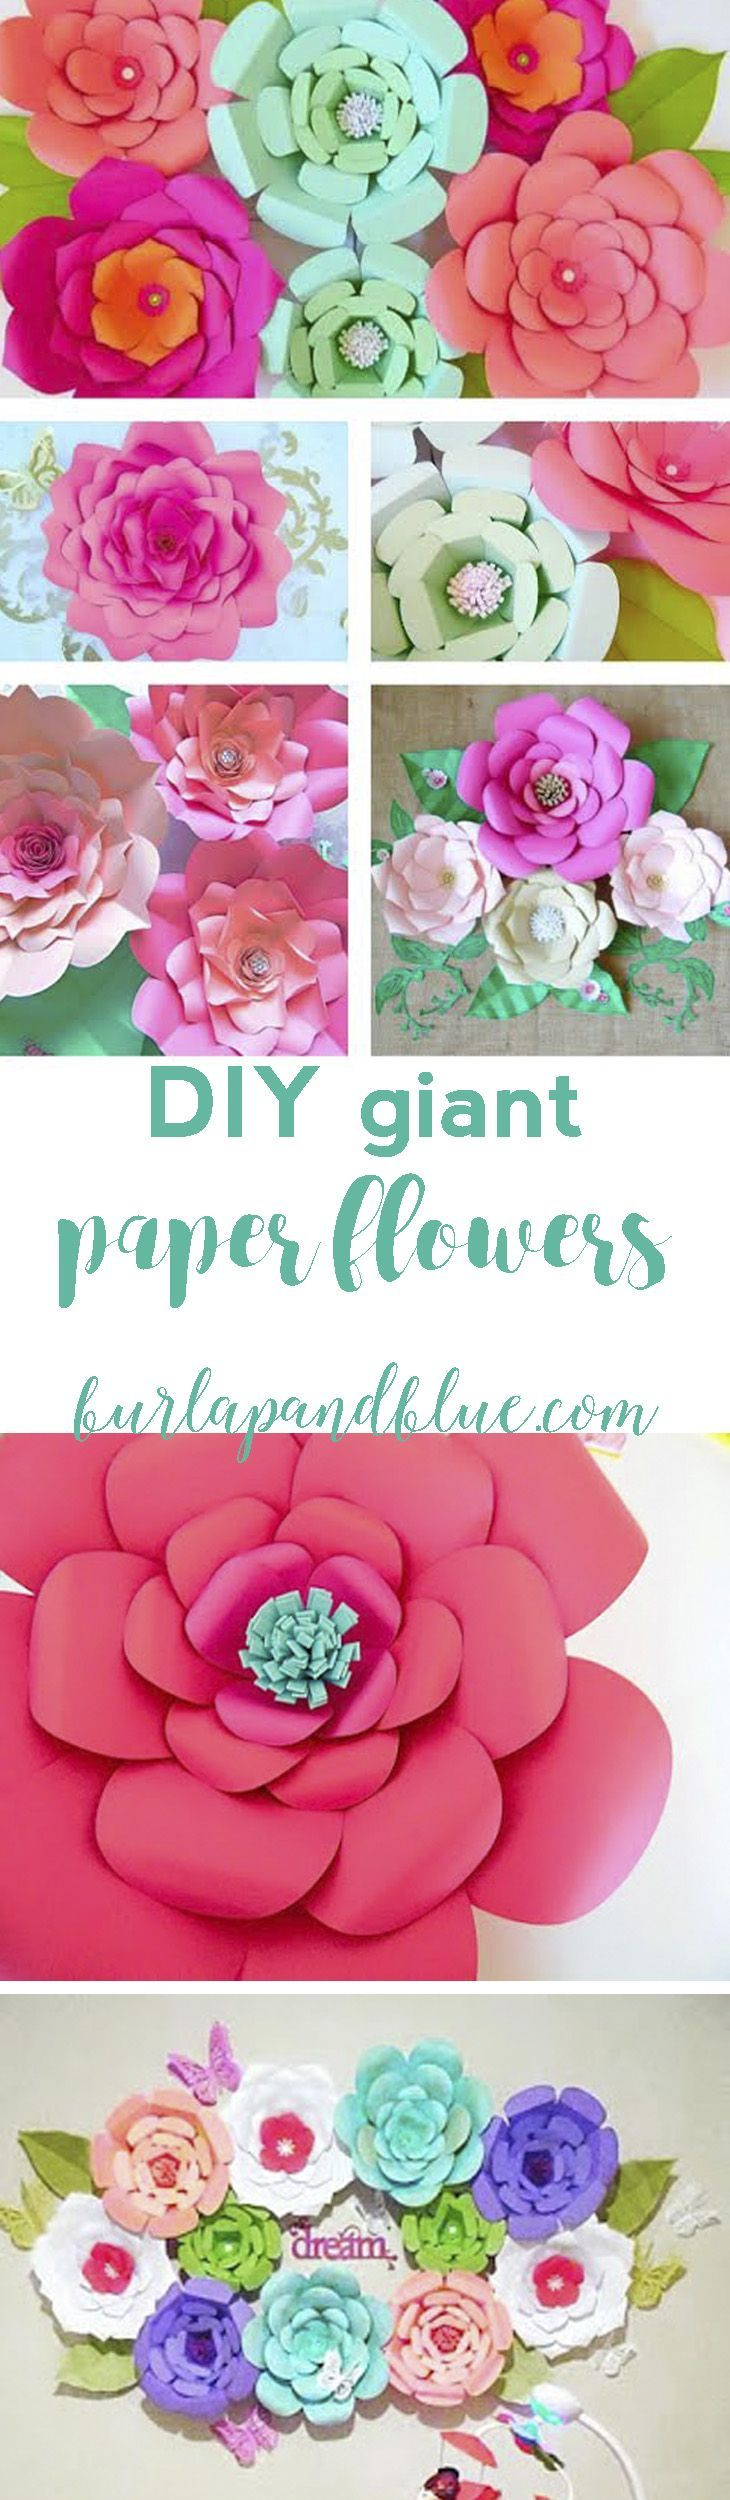 How To Make Paper Flowers Paper Flowers Pinterest Giant Paper